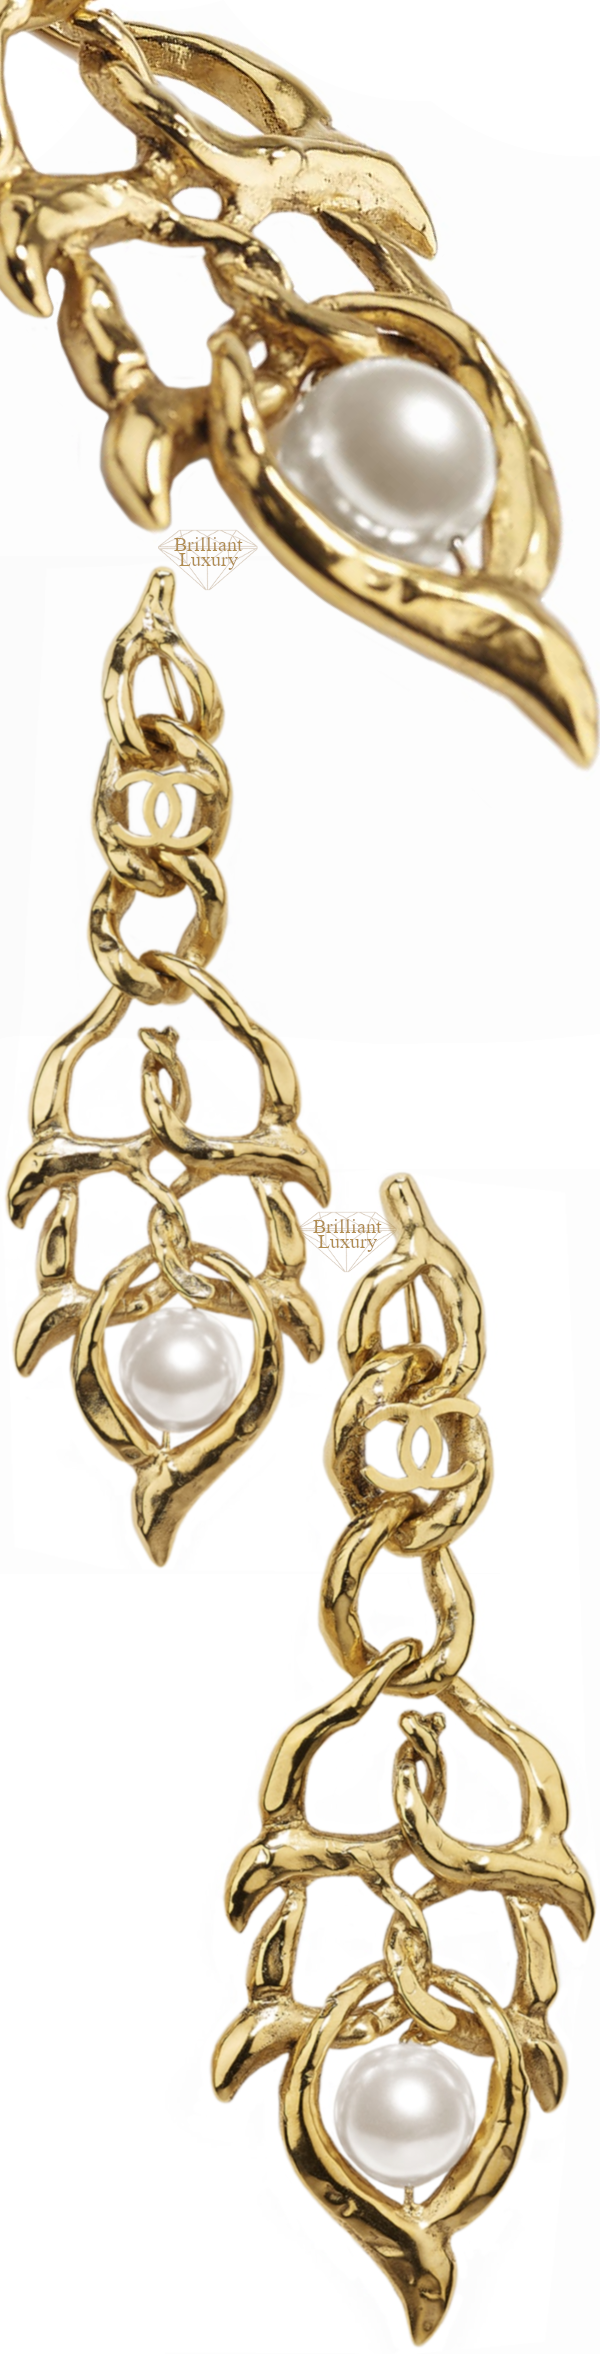 CHANEL Metal and Glass Pearls Clip-On Earrings #jewelry